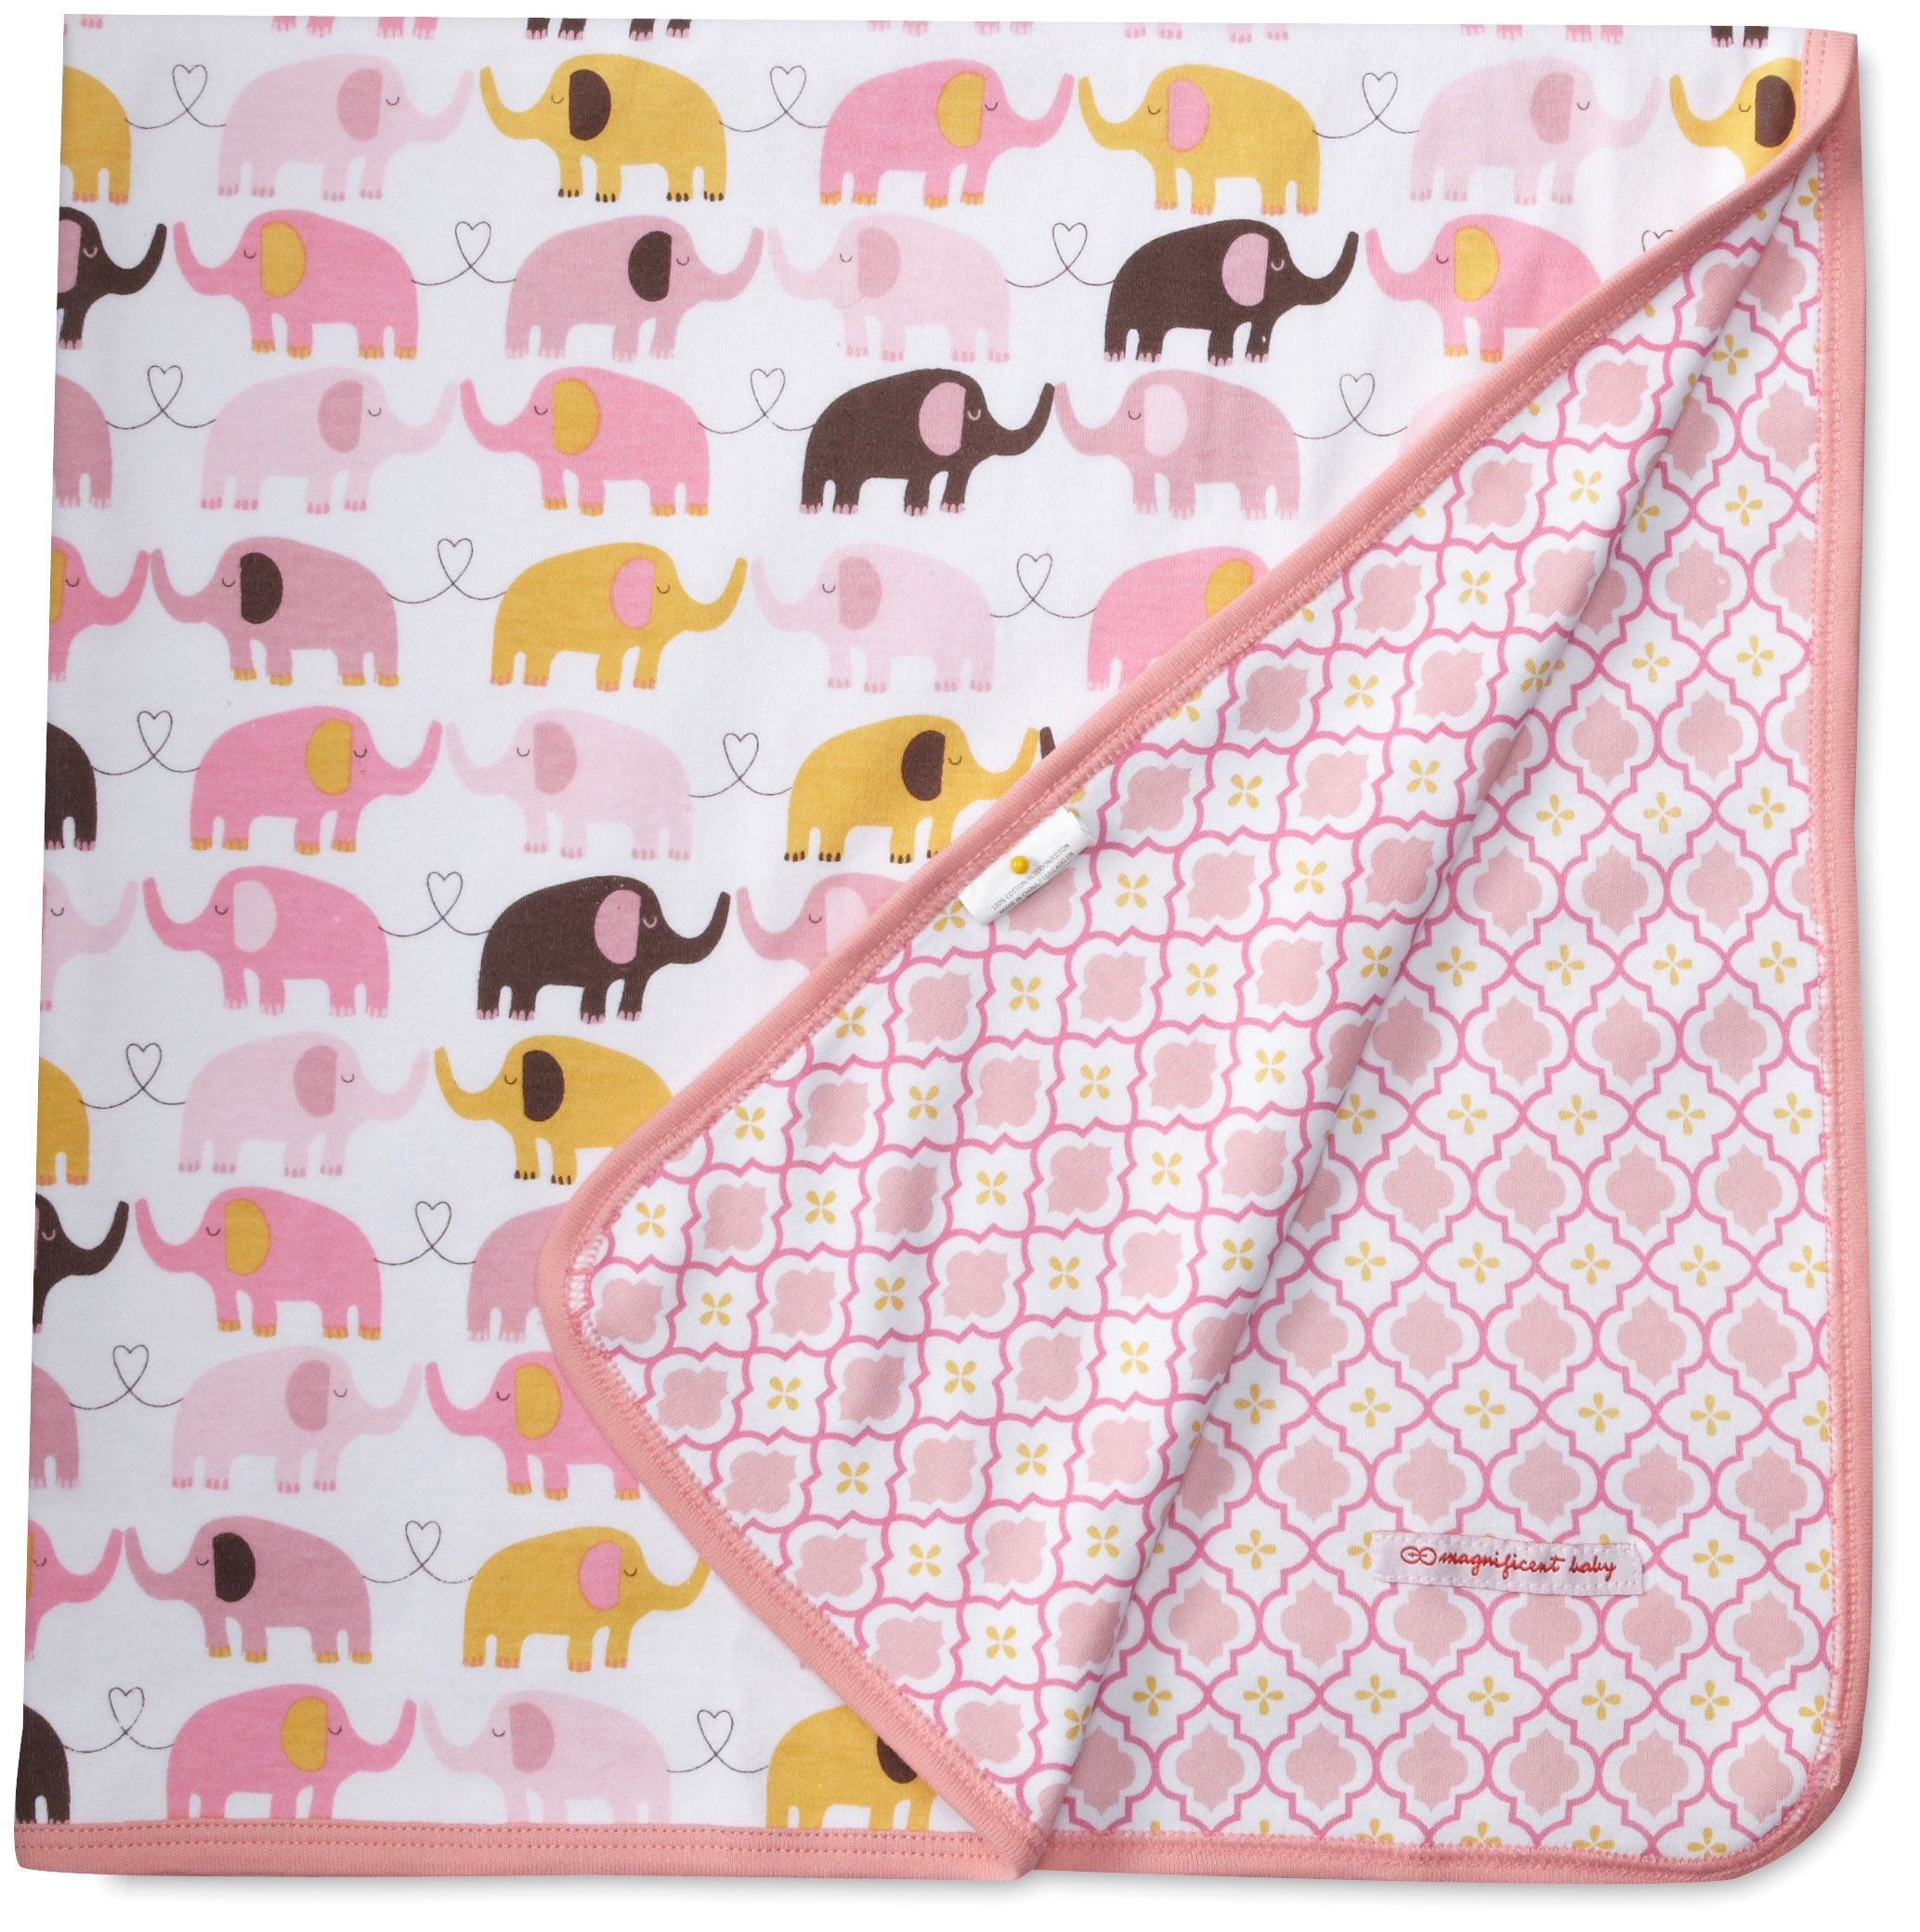 Magnificent Baby Baby-Girls Newborn Reversible Blanket, Elephant/Marrakesh, One Size by Magnificent Baby